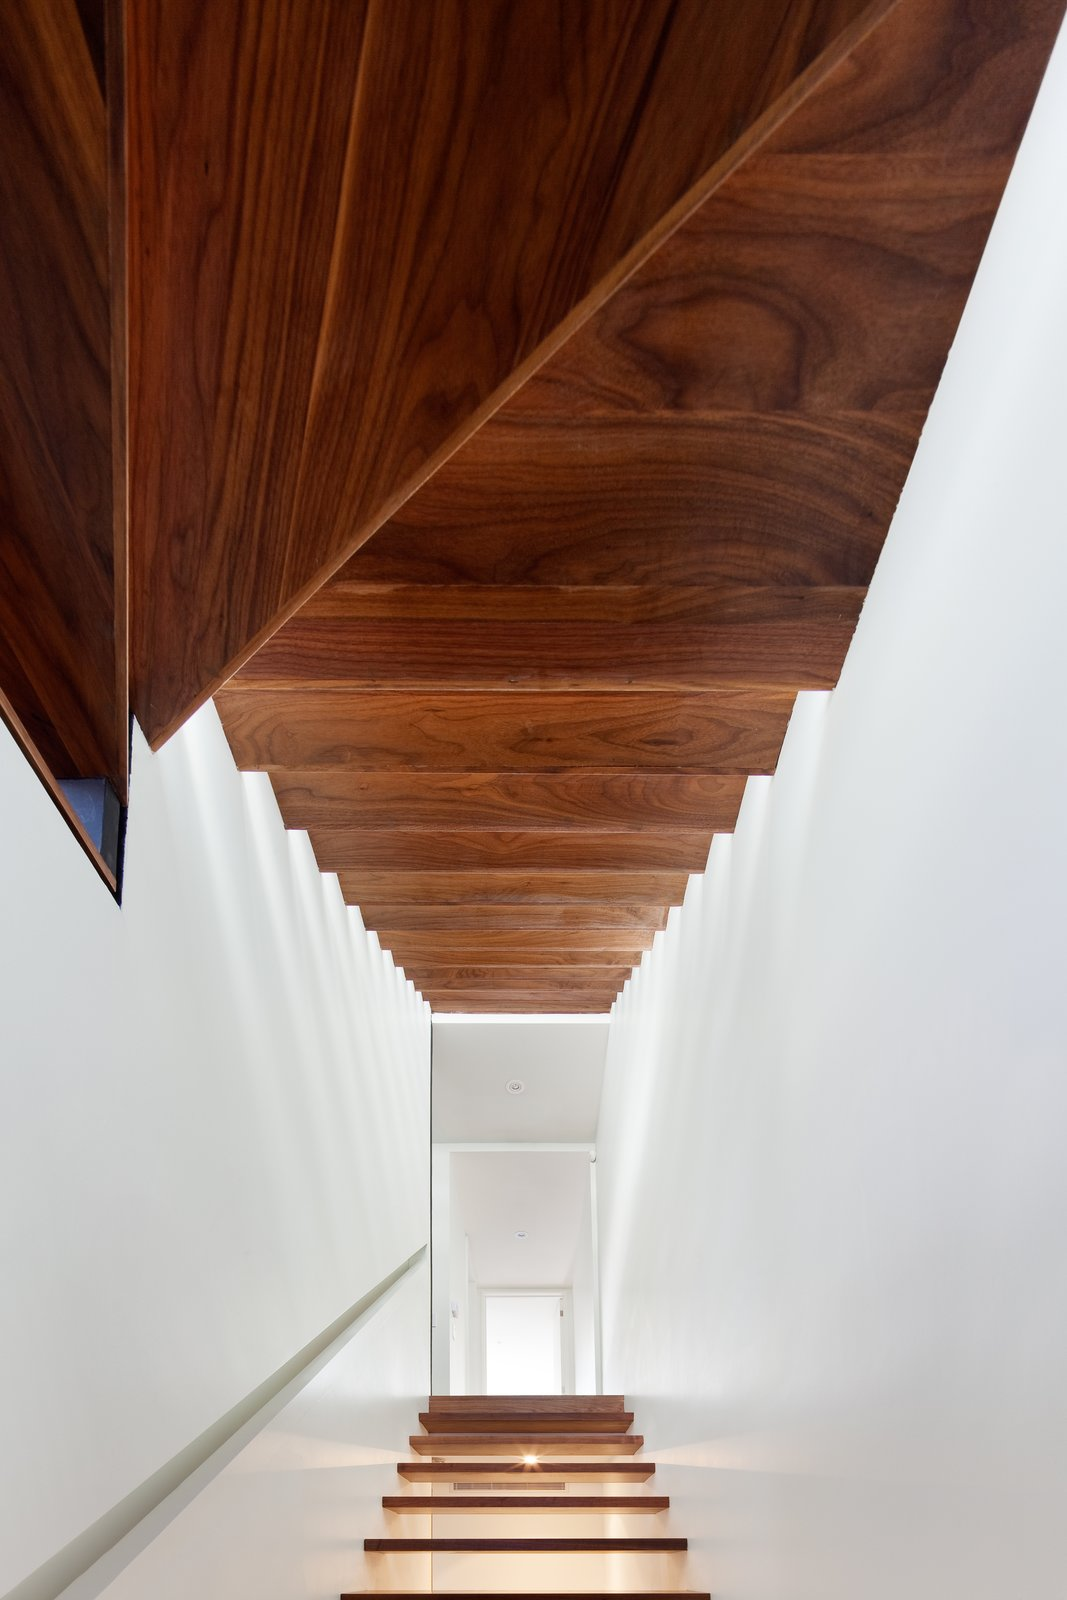 Staircase and Wood Tread Walls were removed and a new open riser stair was stacked vertically along the party wall from the basement to the third floor, inviting light and air into the once light-devoid interior spaces.  Contrast House